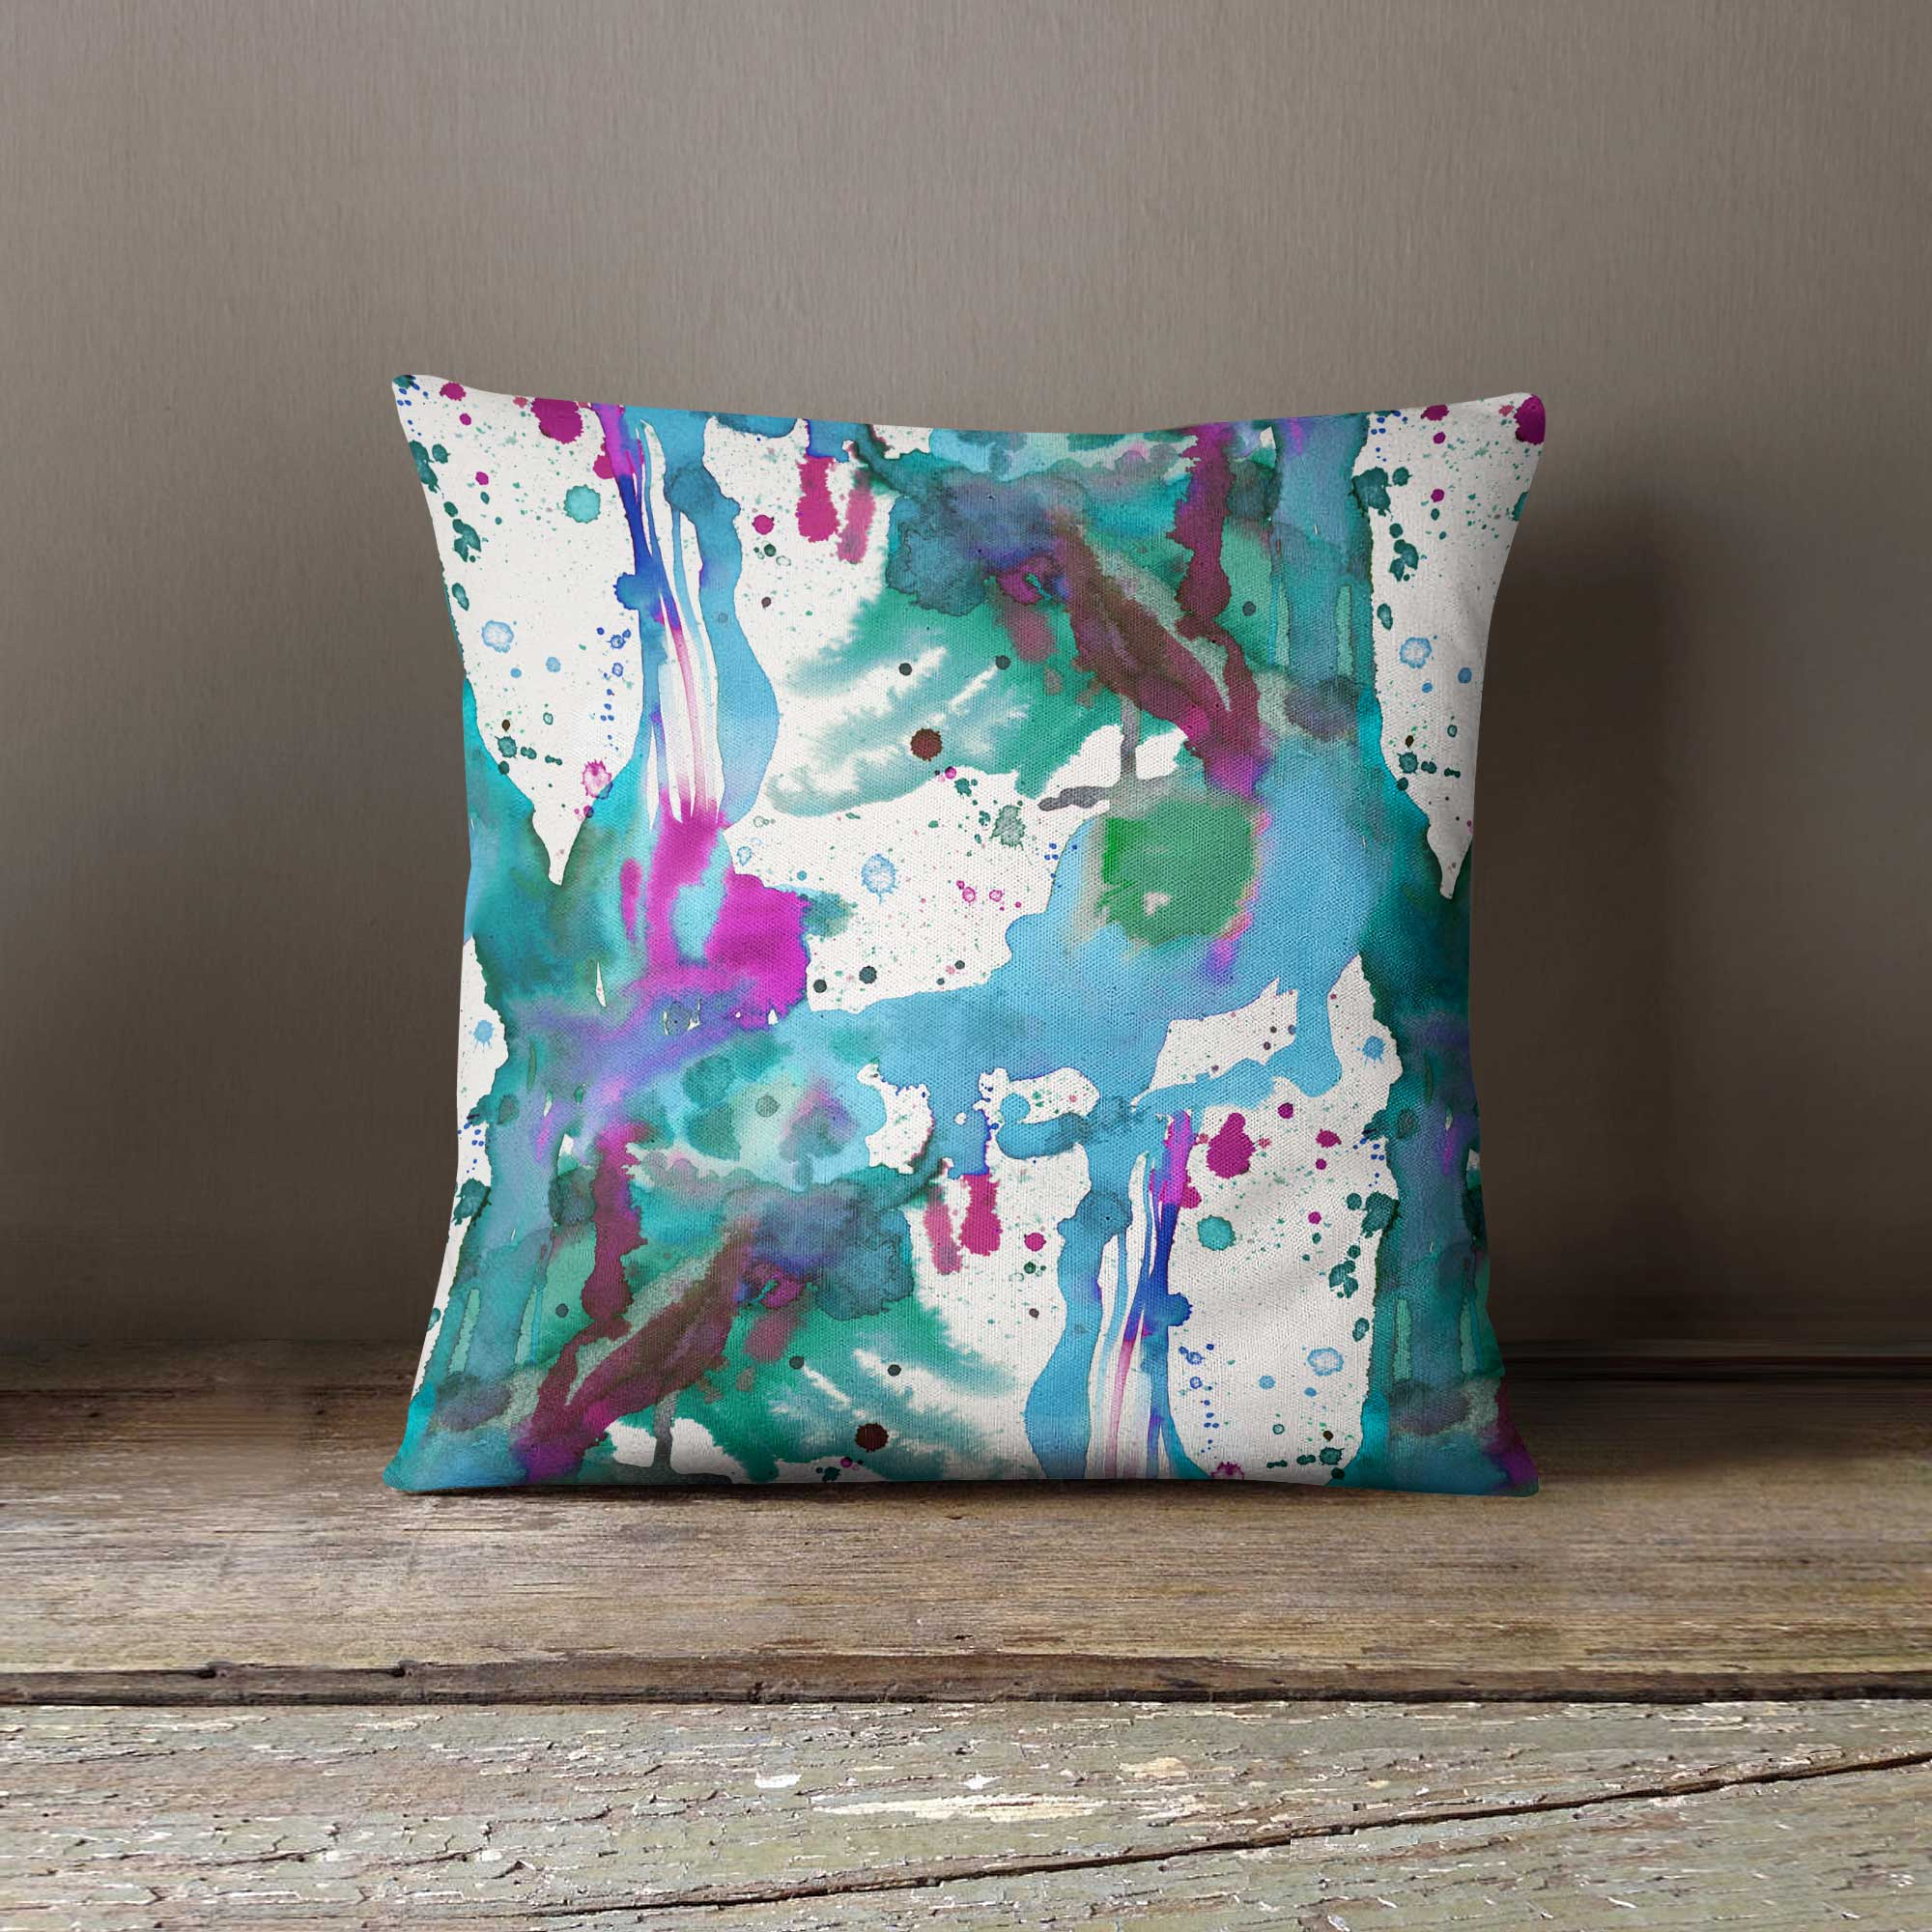 Ninola Design Watercolour Abstract Paint Splashes Cushion